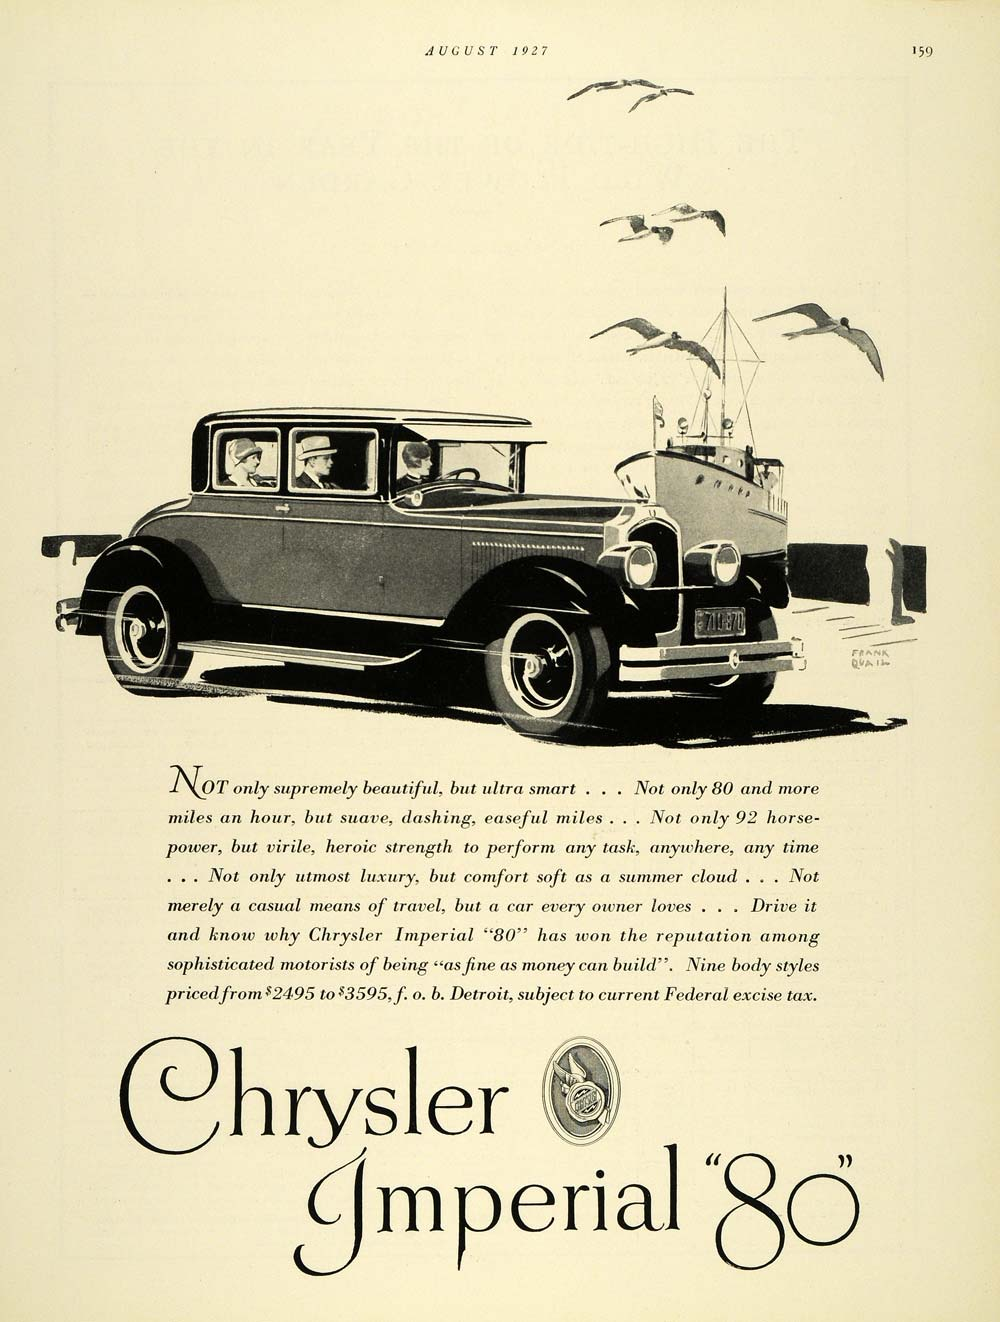 1927 Ad Chrysler Imperial 80 Antique Frank Quail Ship - ORIGINAL THB1